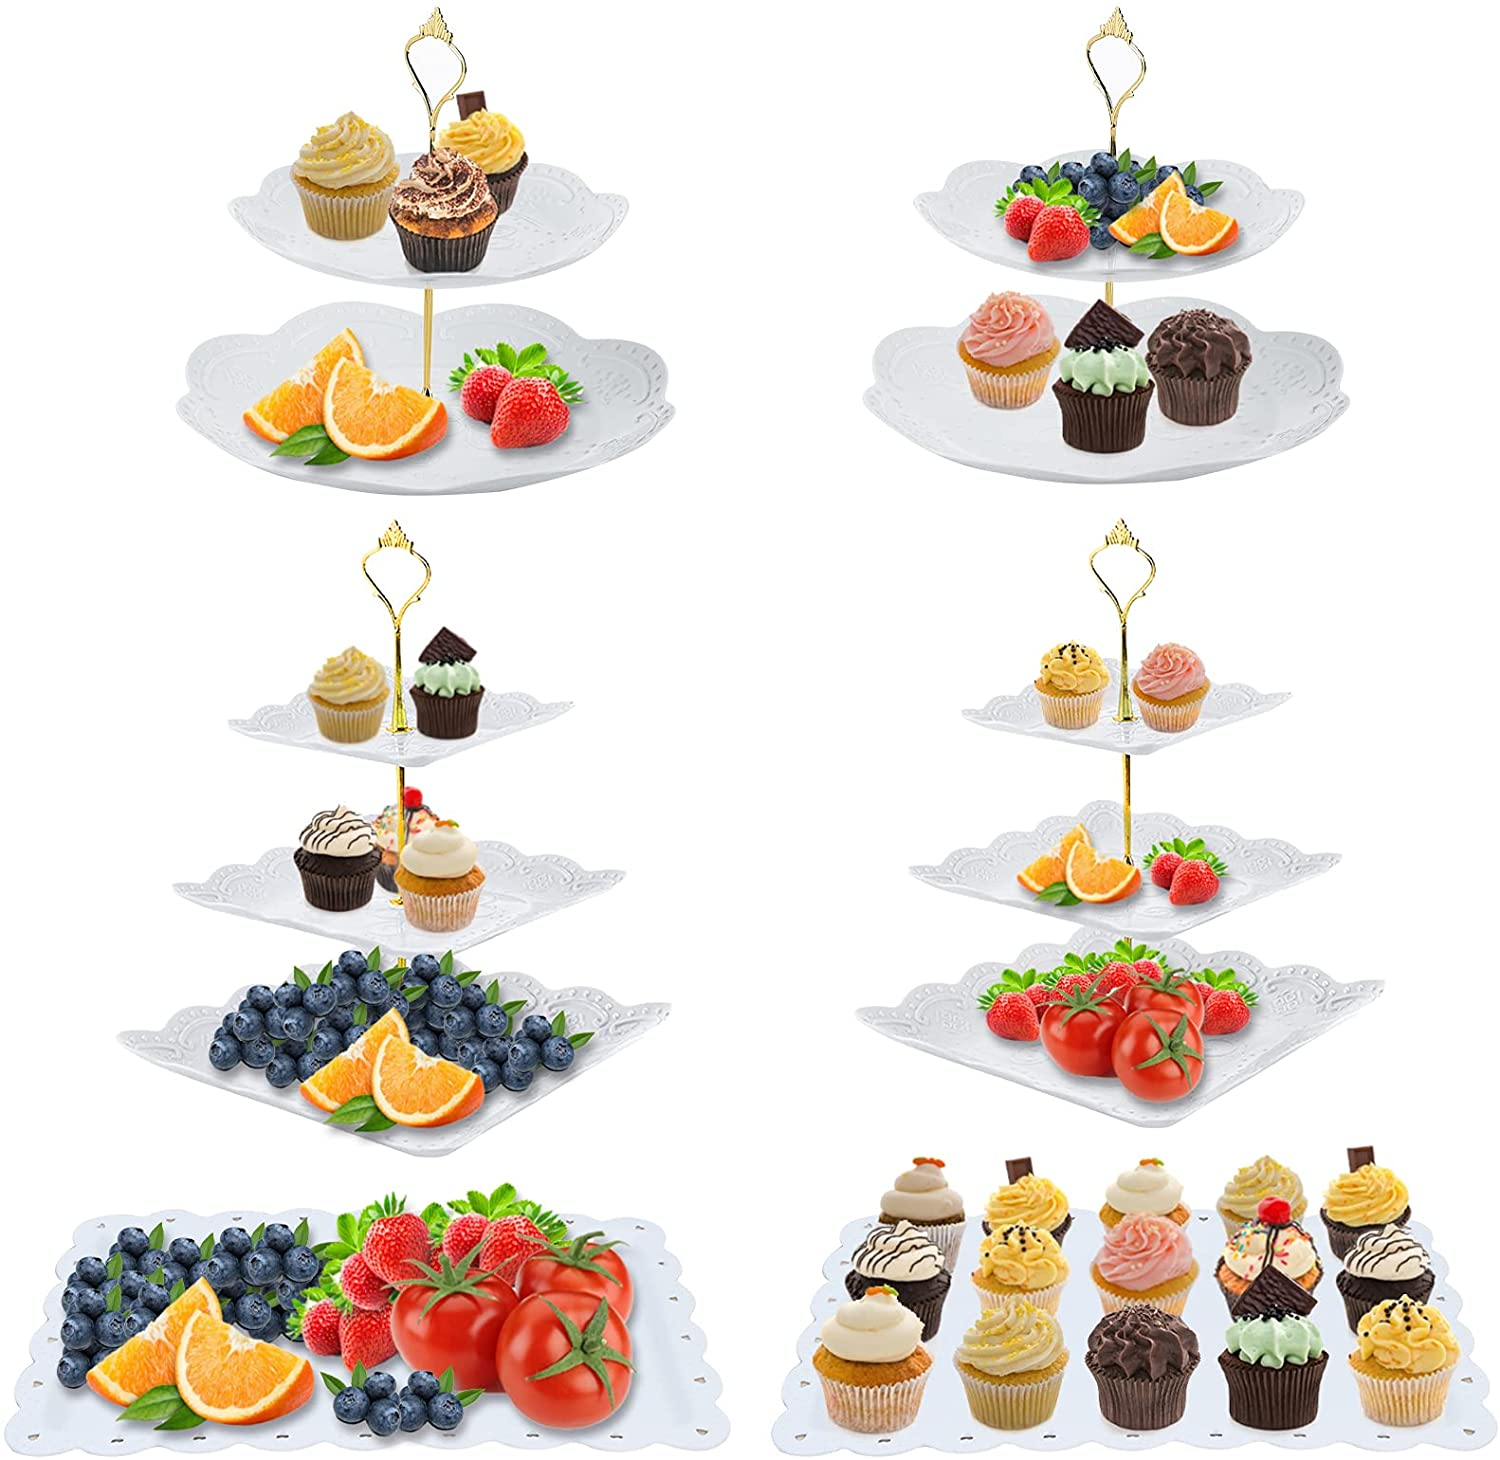 6 Set 3 Tier Cupcake Stand White Plastic Party Cake Stand Cupcake Holder Tiered Cake Stand Fruit Candy Dessert Display Plates Serving Tray Table Decoration for Baby Shower Wedding Birthday Celebration